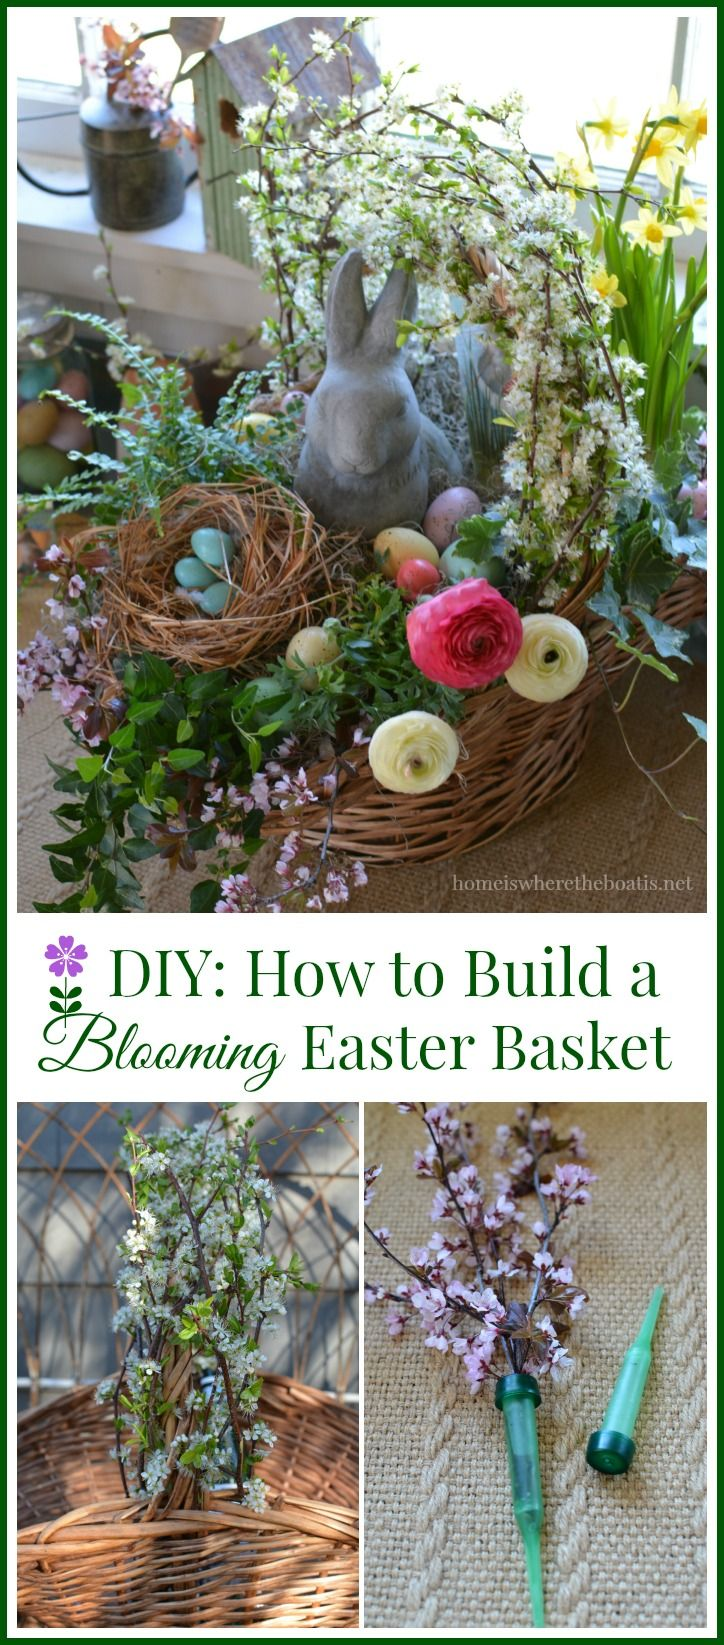 Easy tips and tricks for building a blooming Easter basket! Good tutorial for creating a centerpiece with a basket using pots of flowers for Mother's Day or May Day too! #DIY | homeiswheretheboatis.net #Easter